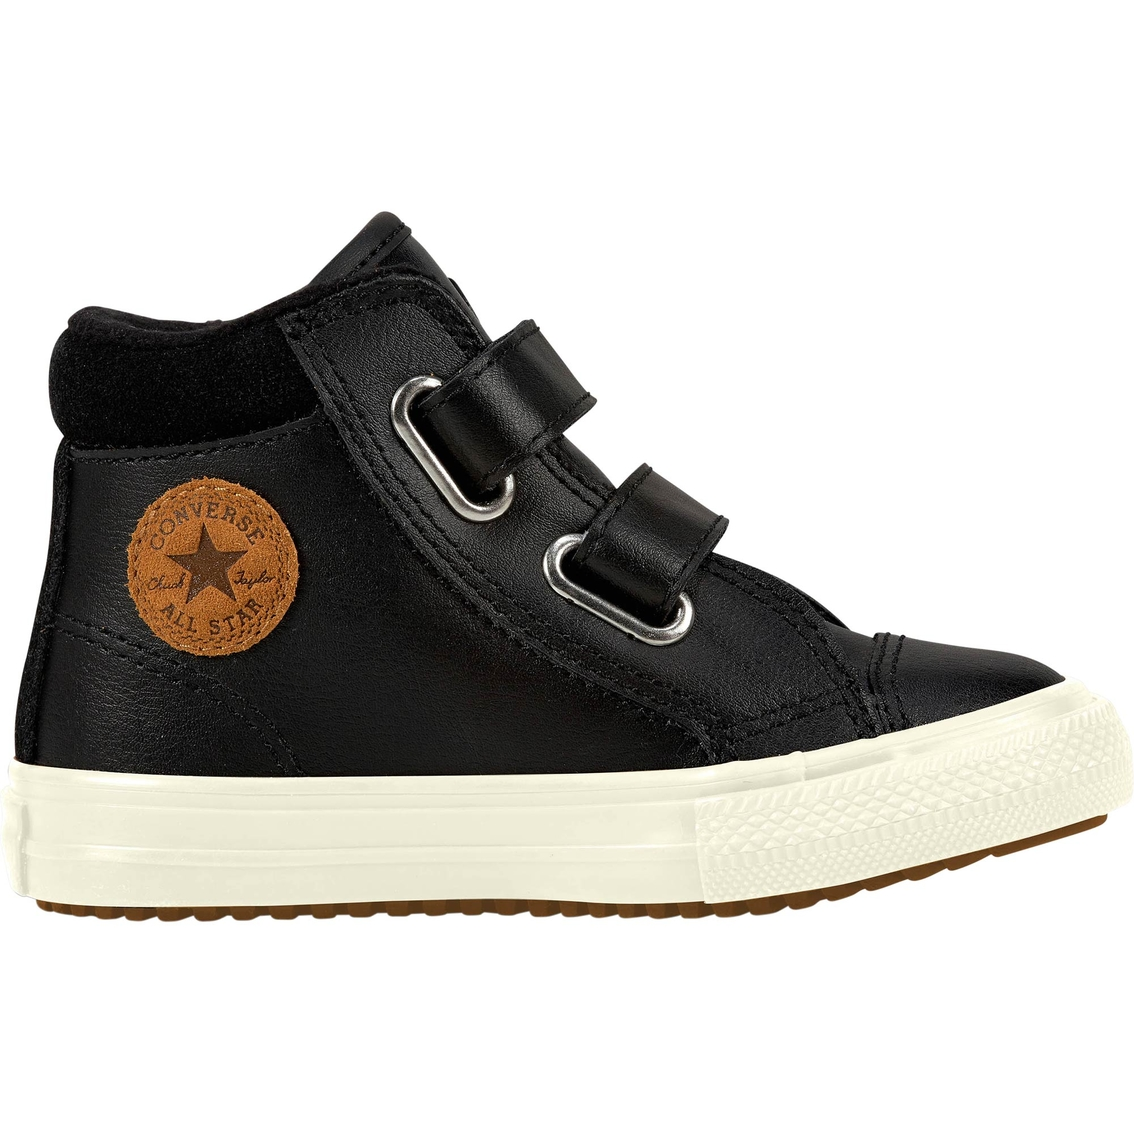 d949c027f55f Converse Boys Chuck Taylor All Star 2v Pc Boots